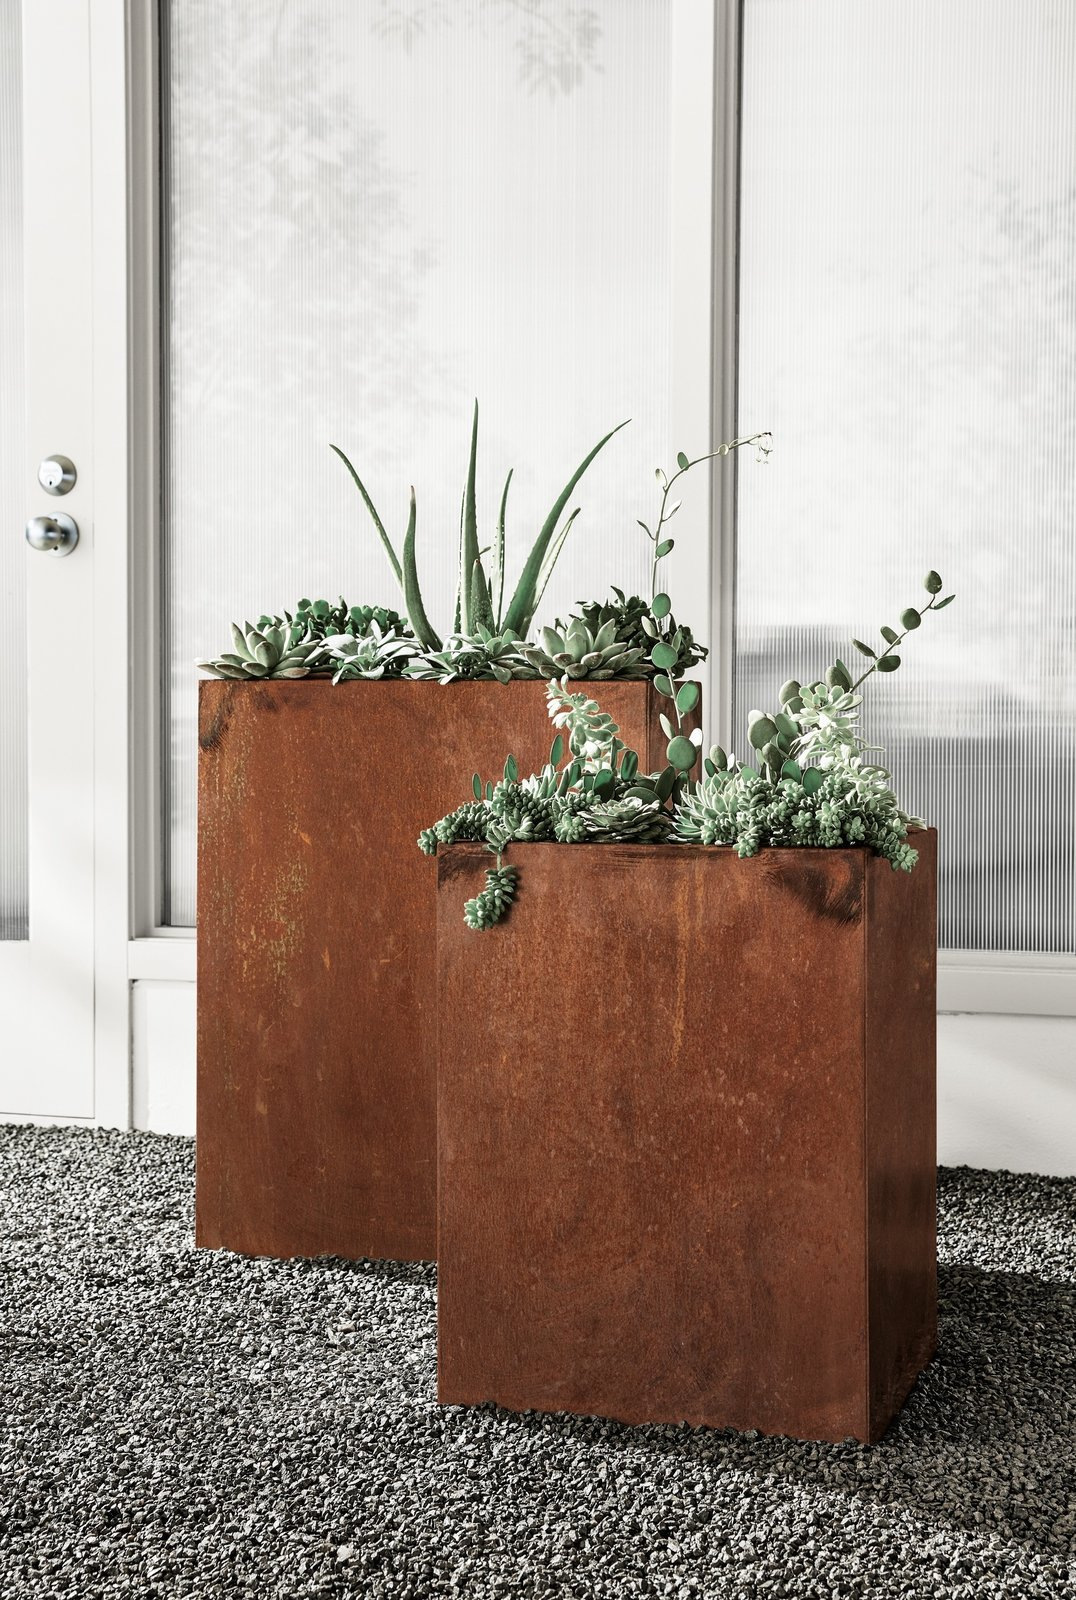 Give your plants a unique home with modern planters made from COR-TEN steel. Often used for bridges or outdoor sculptures, this weathering steel forms a stable, rust-like patina when exposed to the elements. When you receive the planter, it has a shiny appearance that develops a protective layer over time, revealing shades of orange, brown and black. It's a one-of-a-kind, industrial look that adds interest to your outdoor spaces.  20+ Ways to Design with Planters by Allie Weiss from Modern Outdoor Furniture